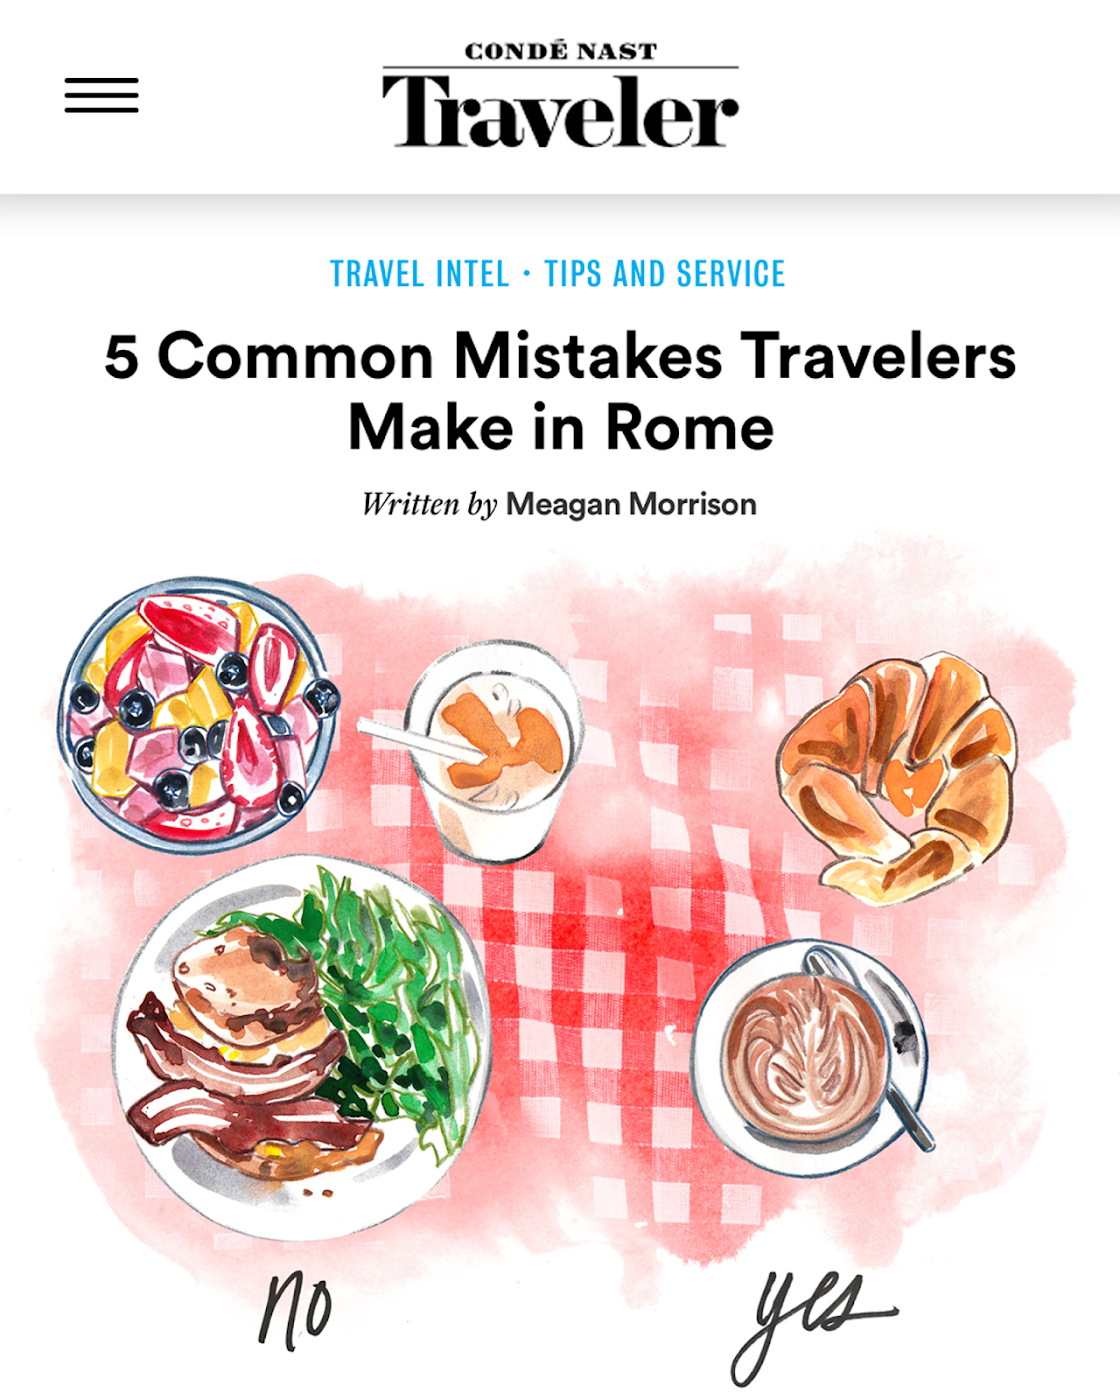 http://www.cntraveler.com/stories/2016-08-08/5-common-mistakes-travelers-make-in-rome